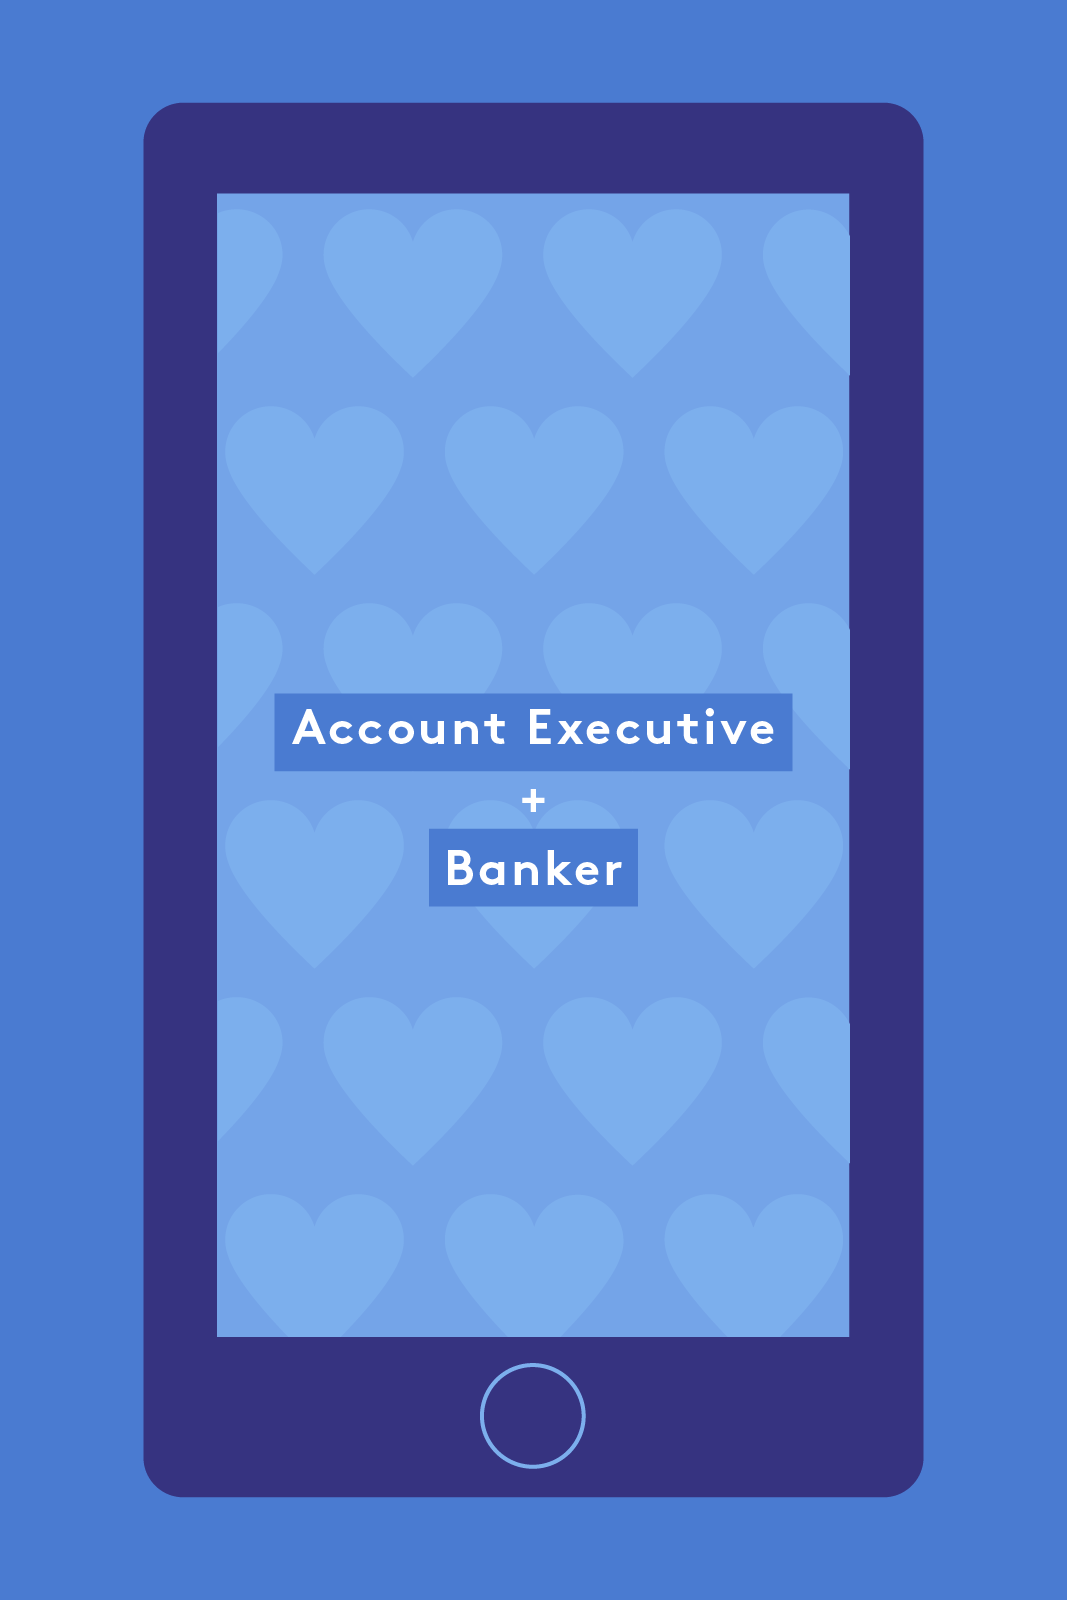 job dating app Zoosk is a leader in online dating located in san francisco, ca that offers competitive salaries and a fun office for those interested in startup jobs.